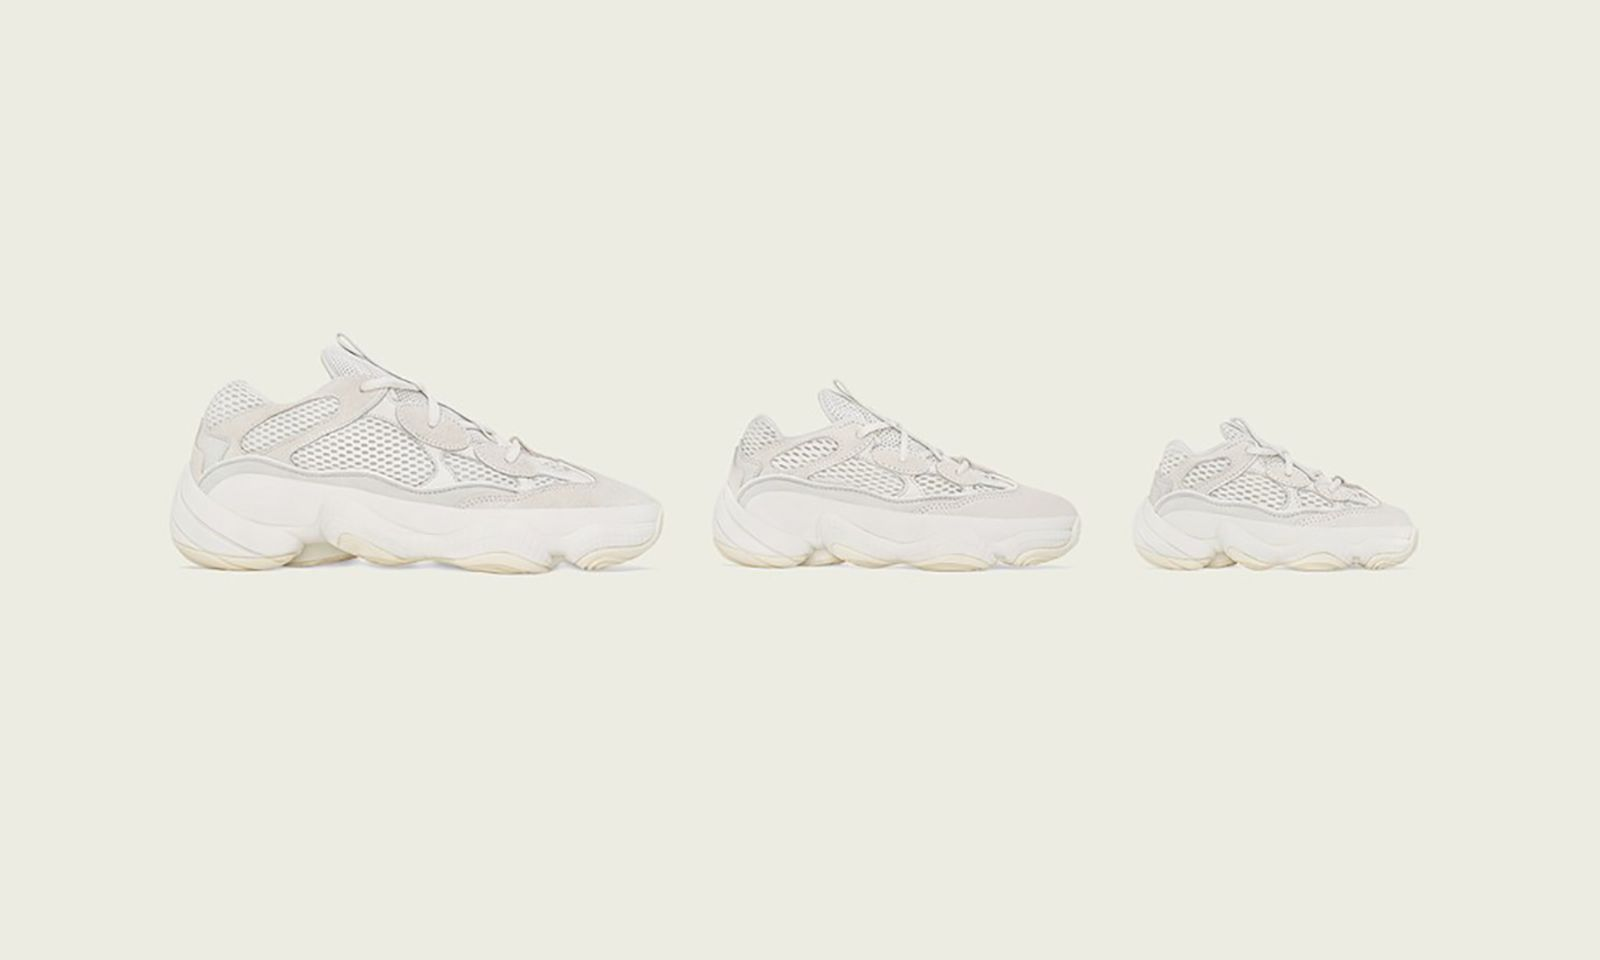 adidas yeezy 500 bone white release date price feature kanye west